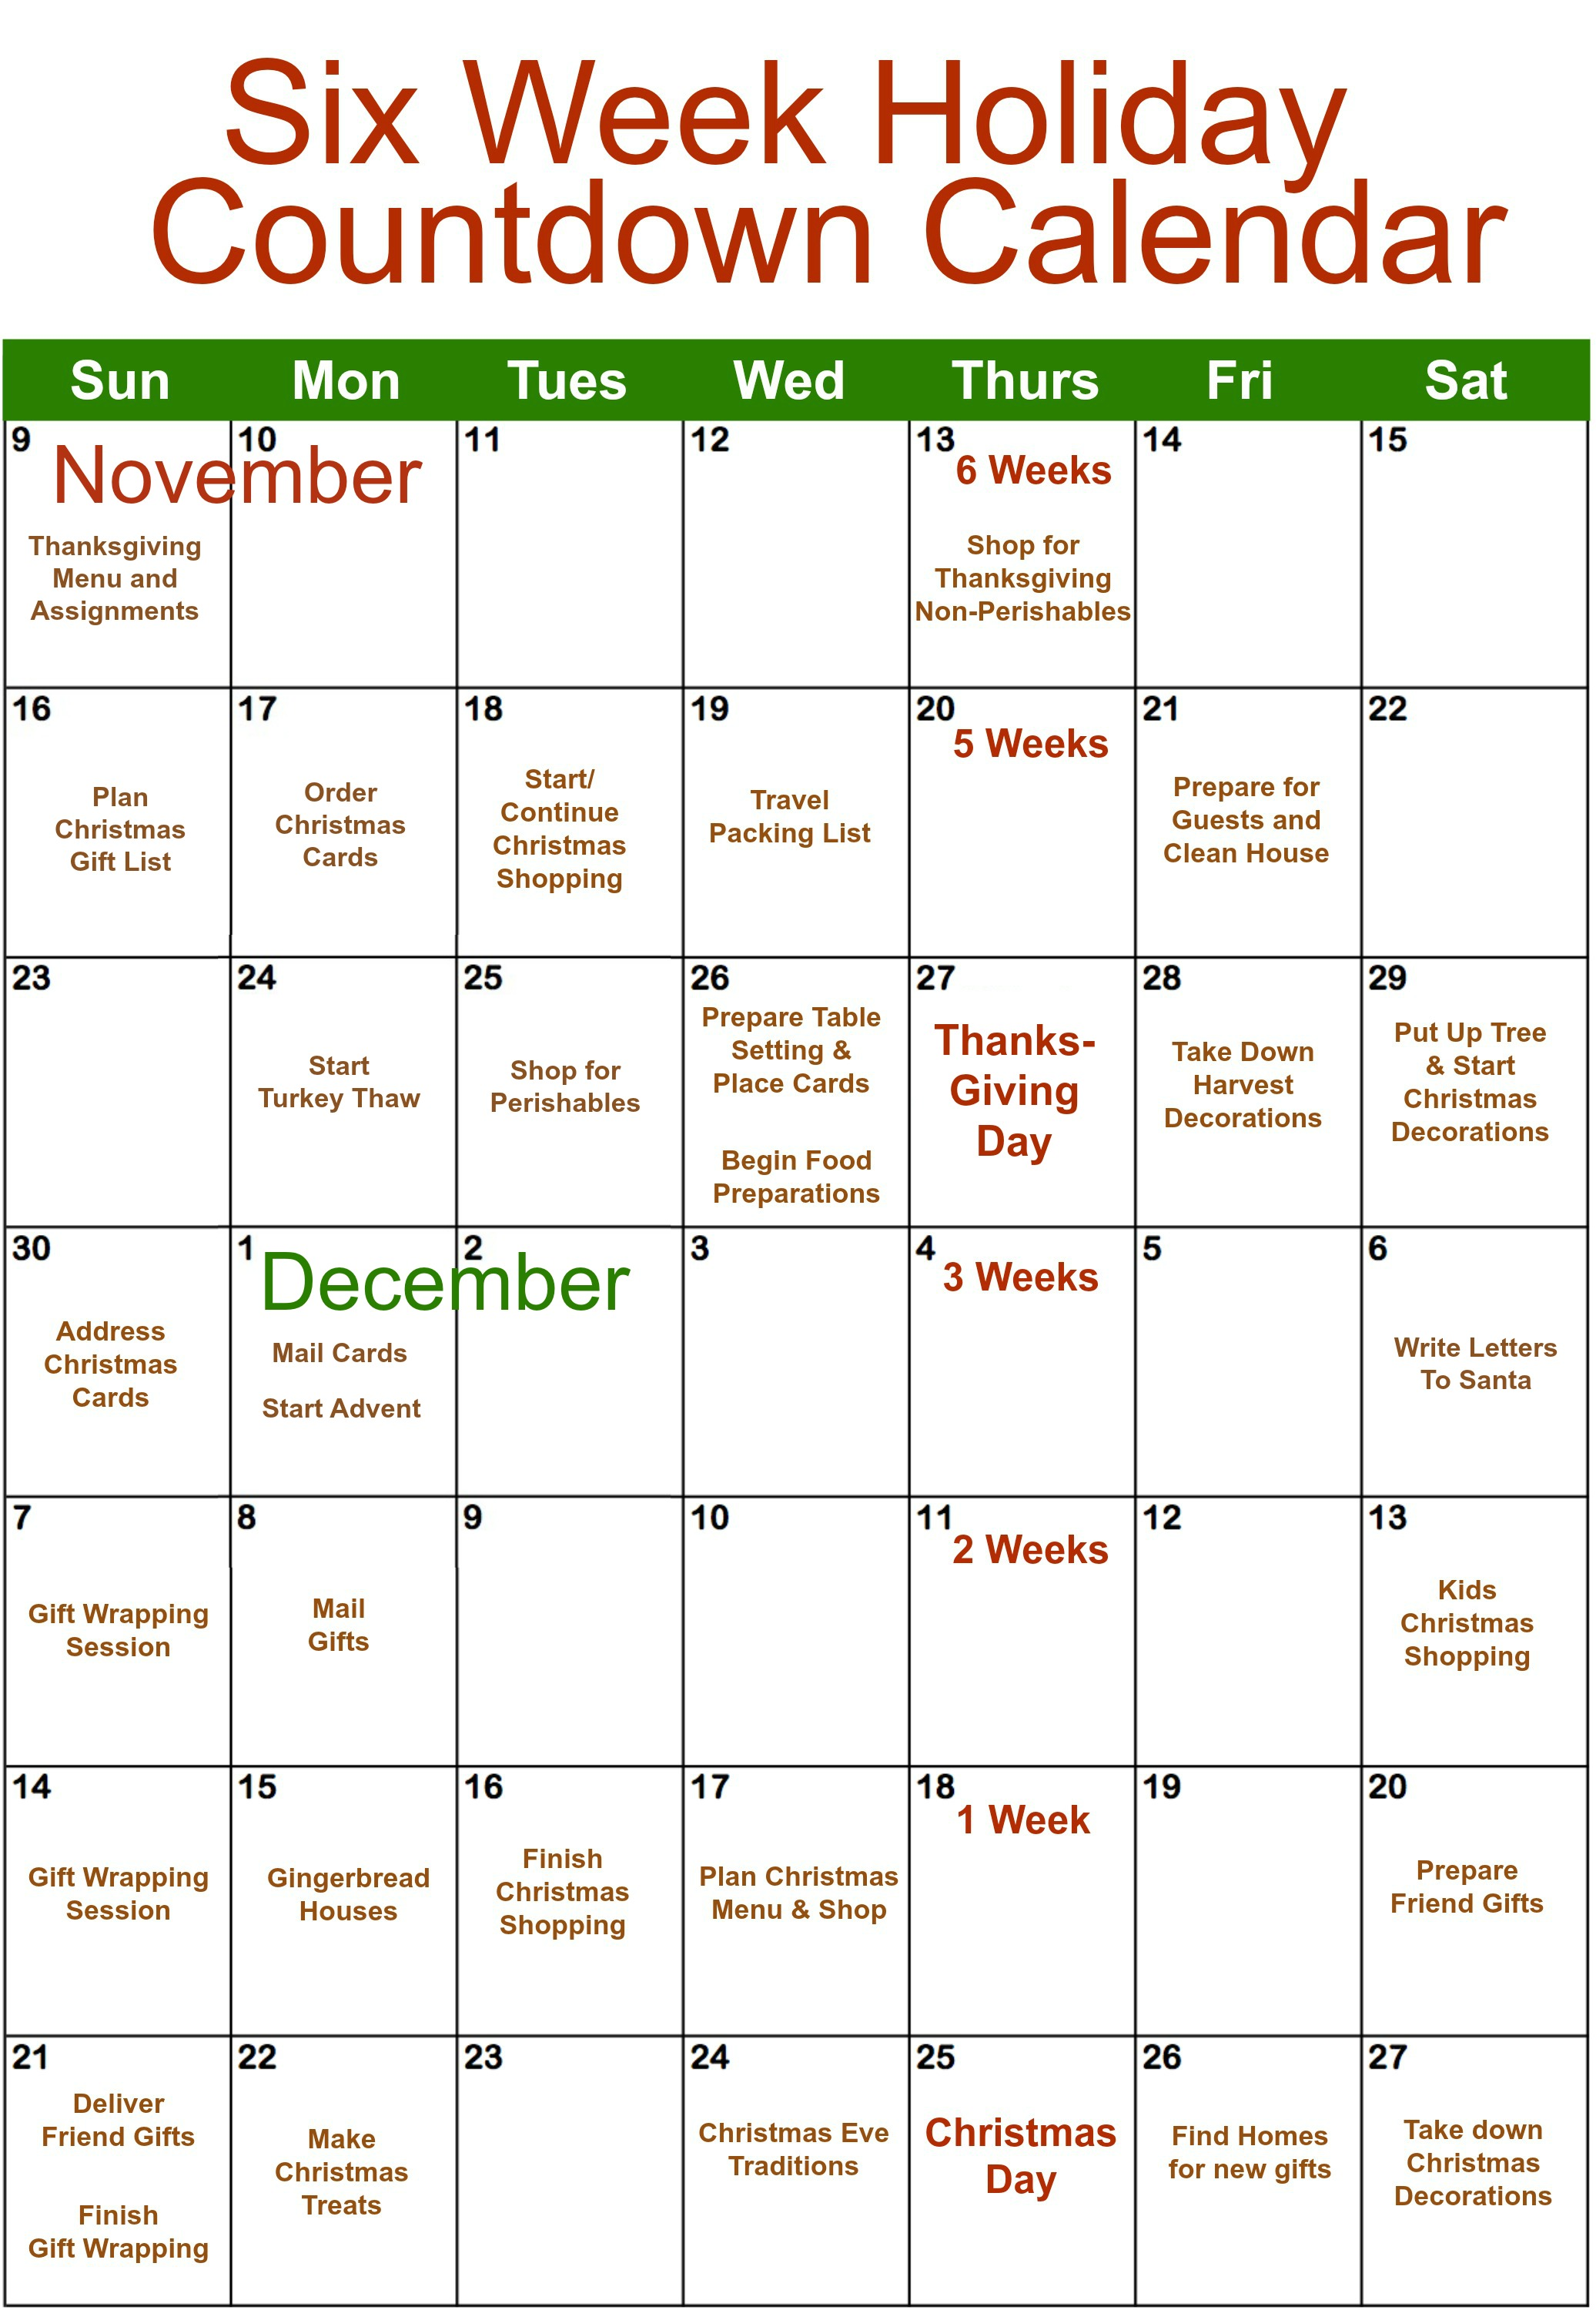 Six Week Holiday Countdown Calendar